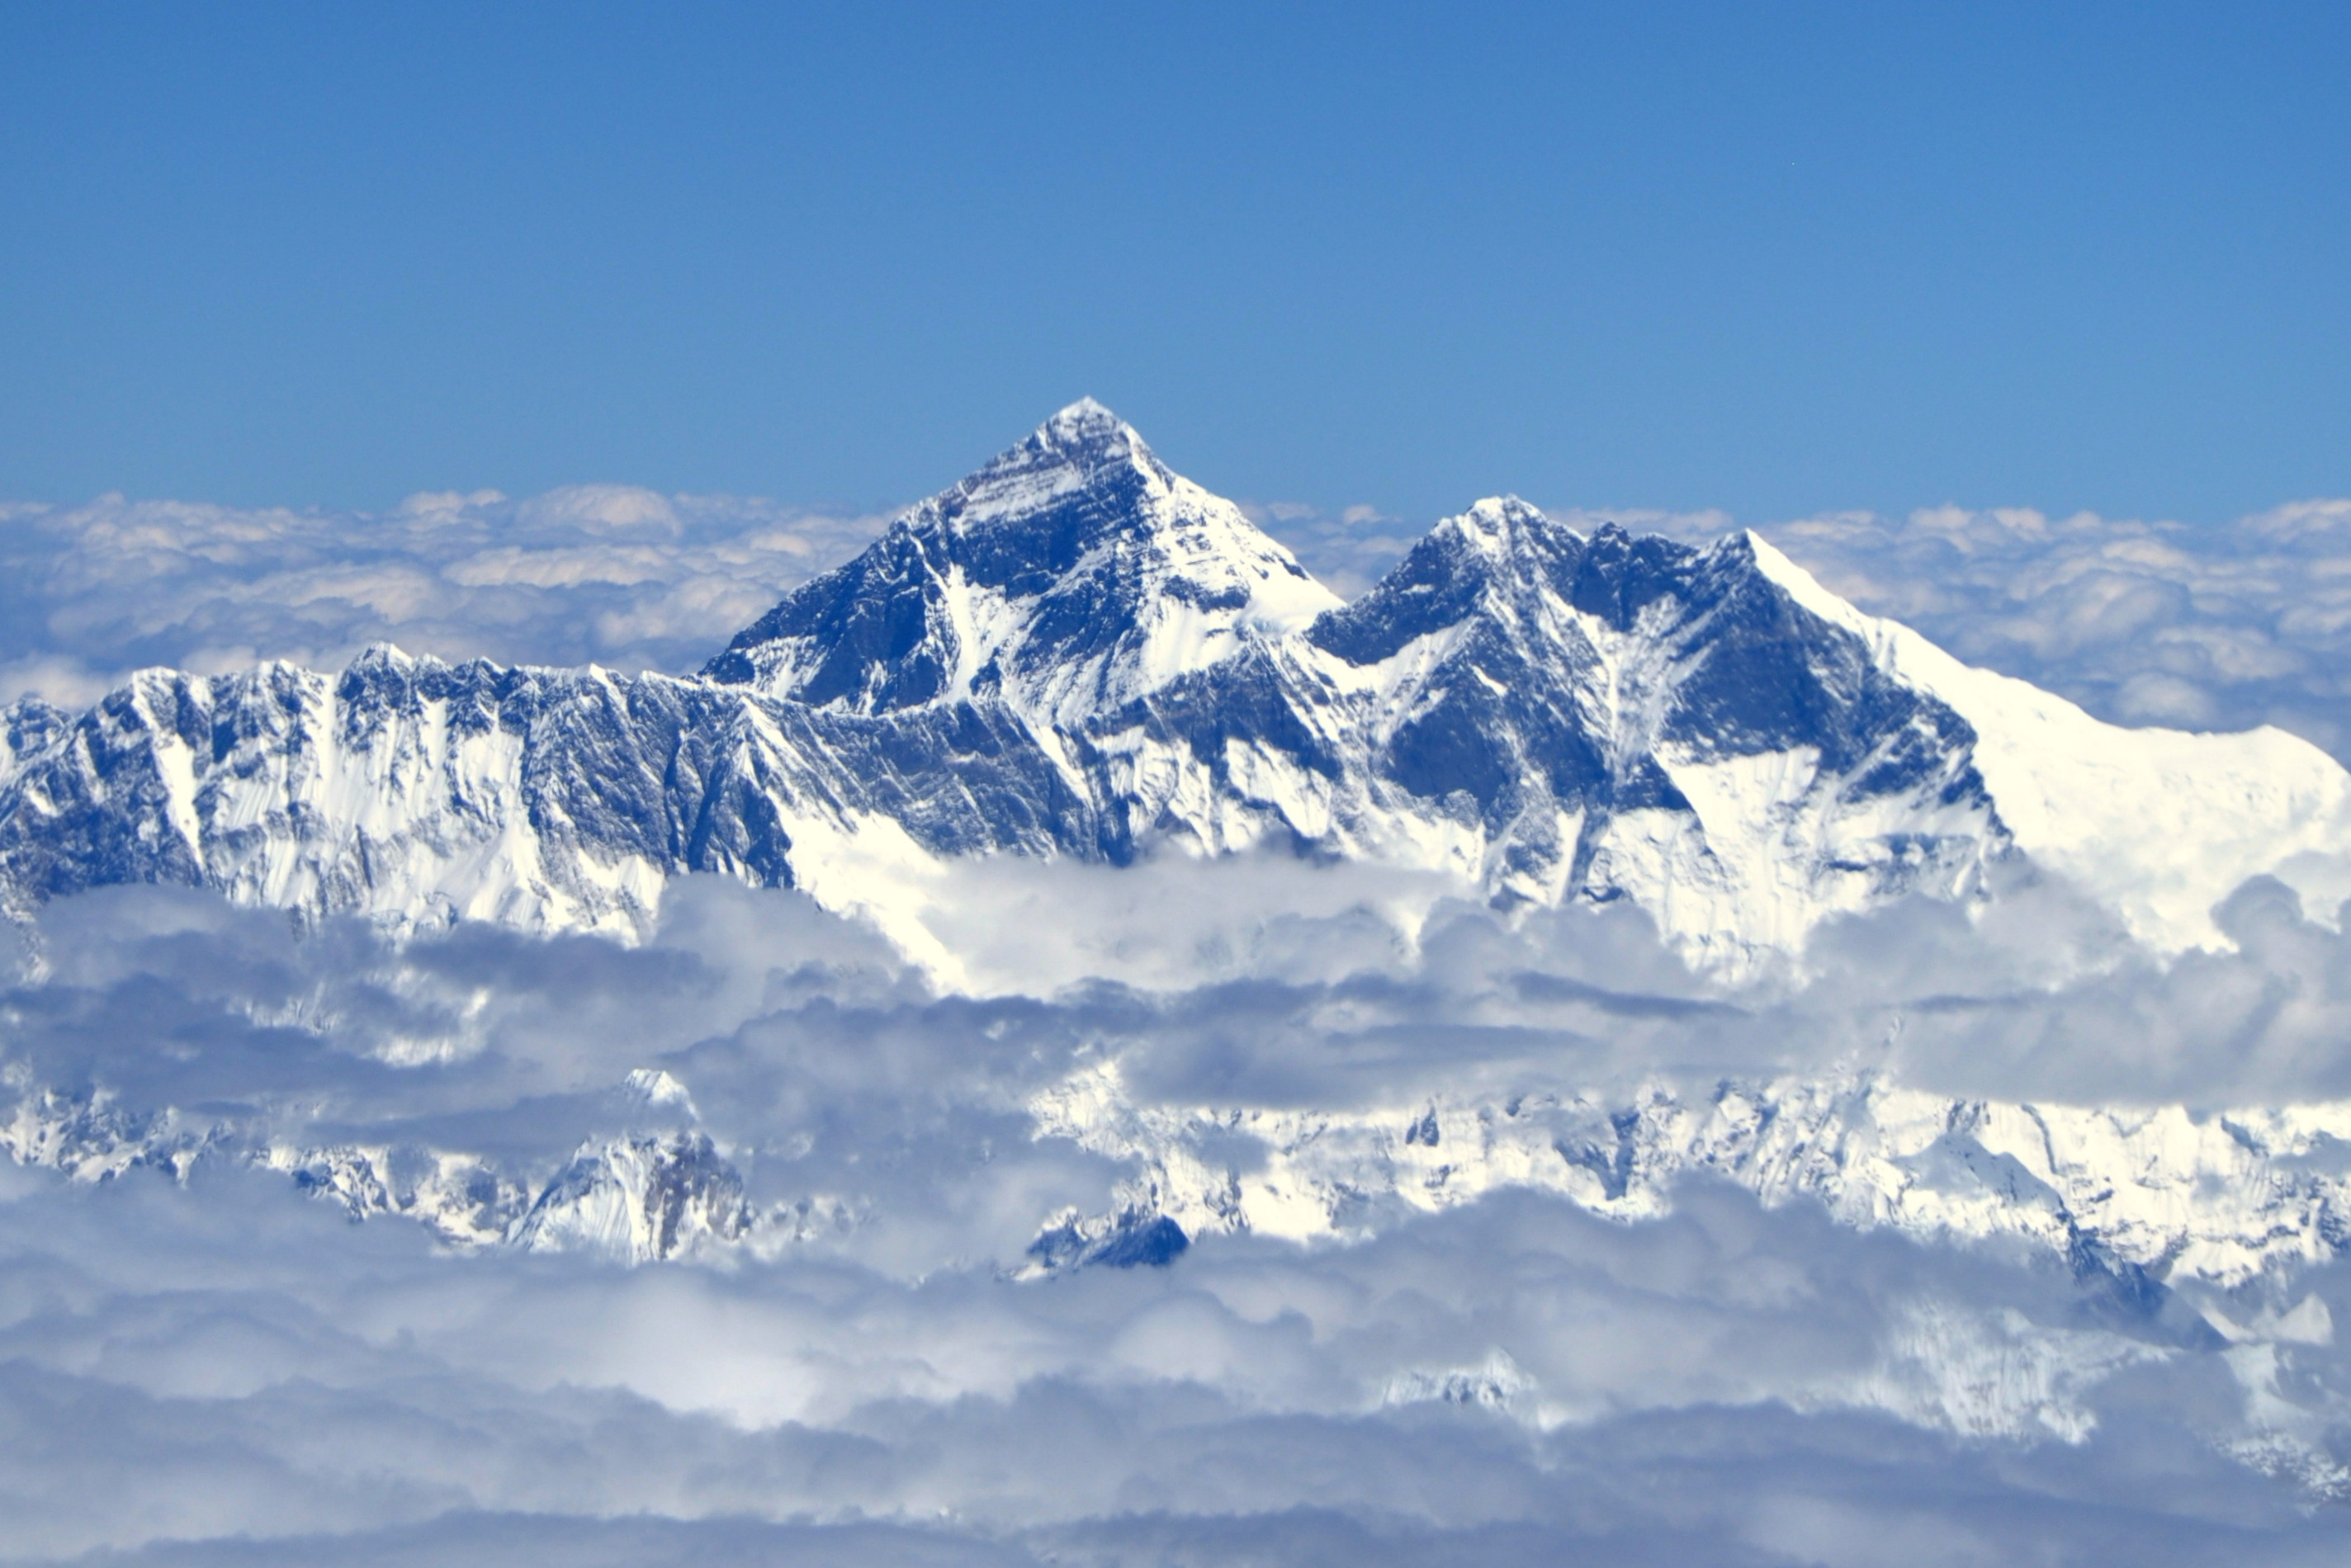 … everest wallpapers hd backgrounds images pics photos free …